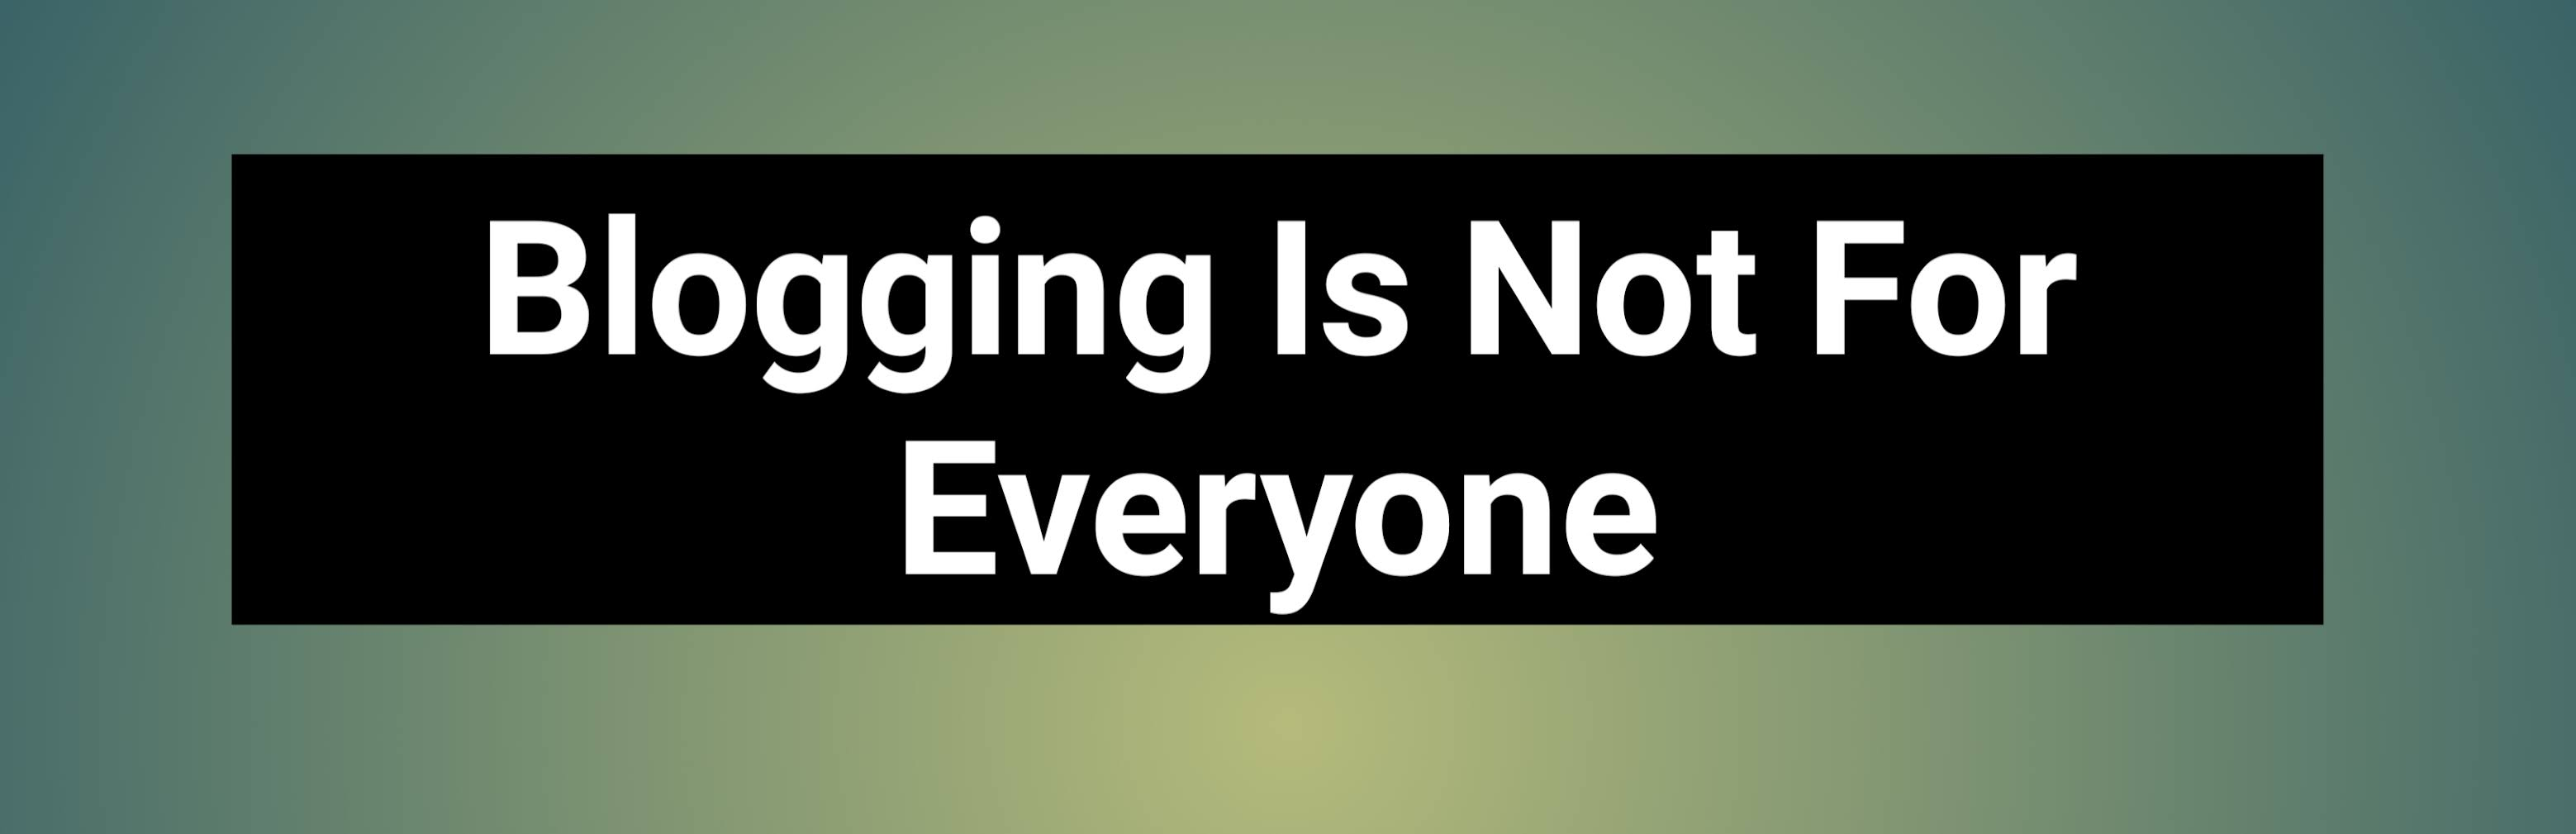 Blogging Is Not For Everyone